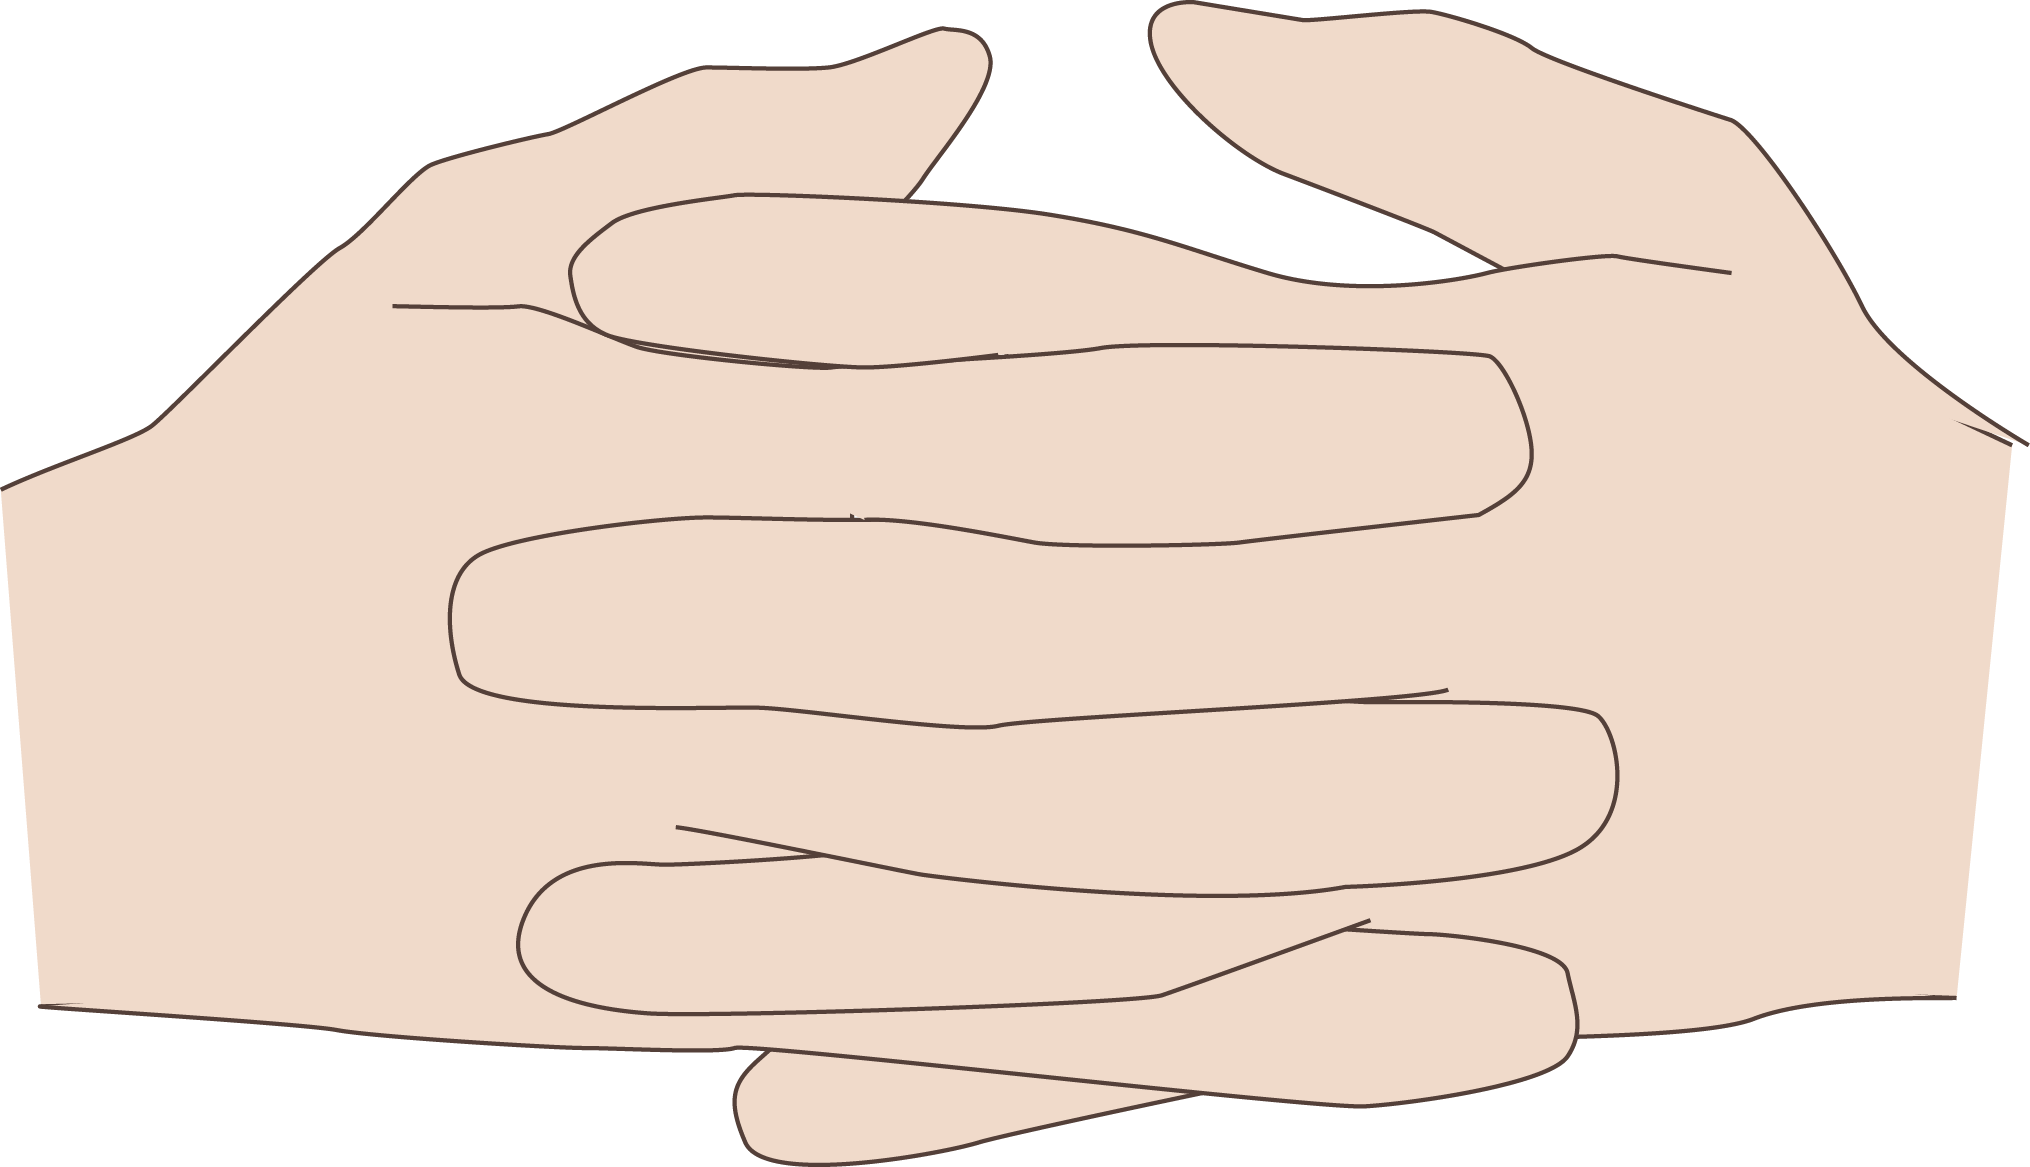 Coding manual two cup. Handshake clipart clasped hand